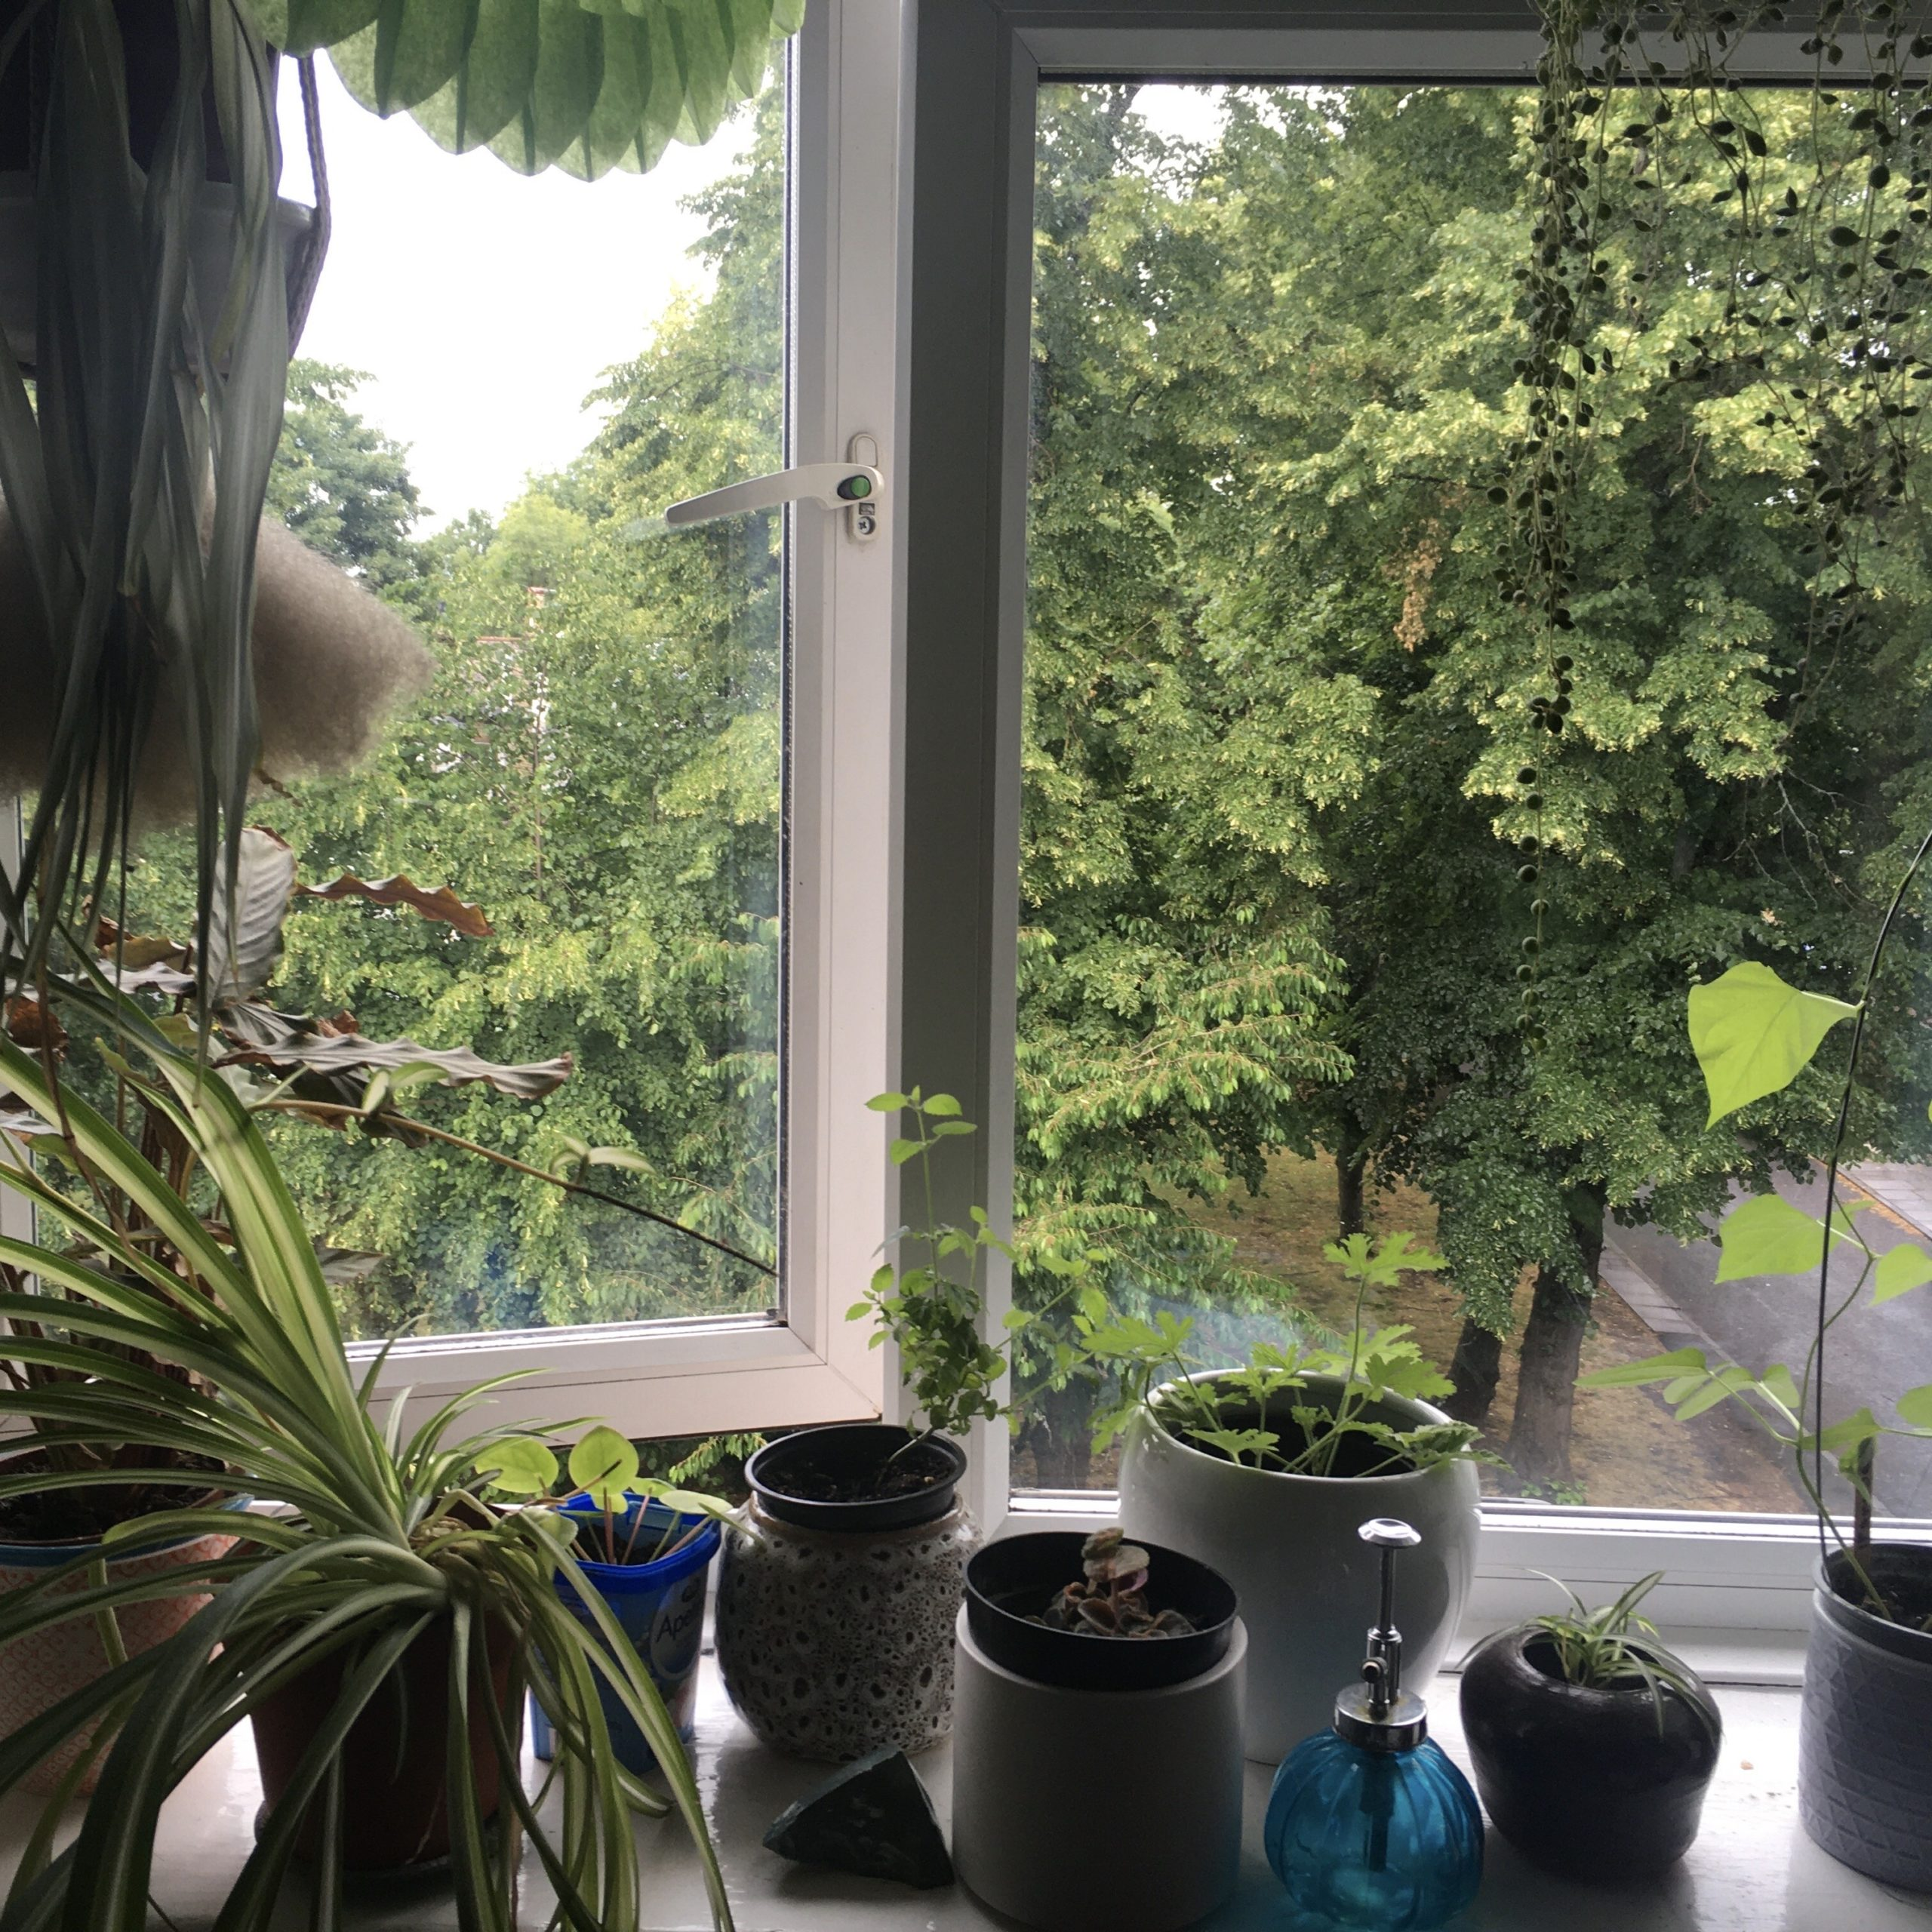 Rain, Bedroom Window, Brockley, London, UK at 1.30pm on 17th June 2020 – by Liberty Rowley